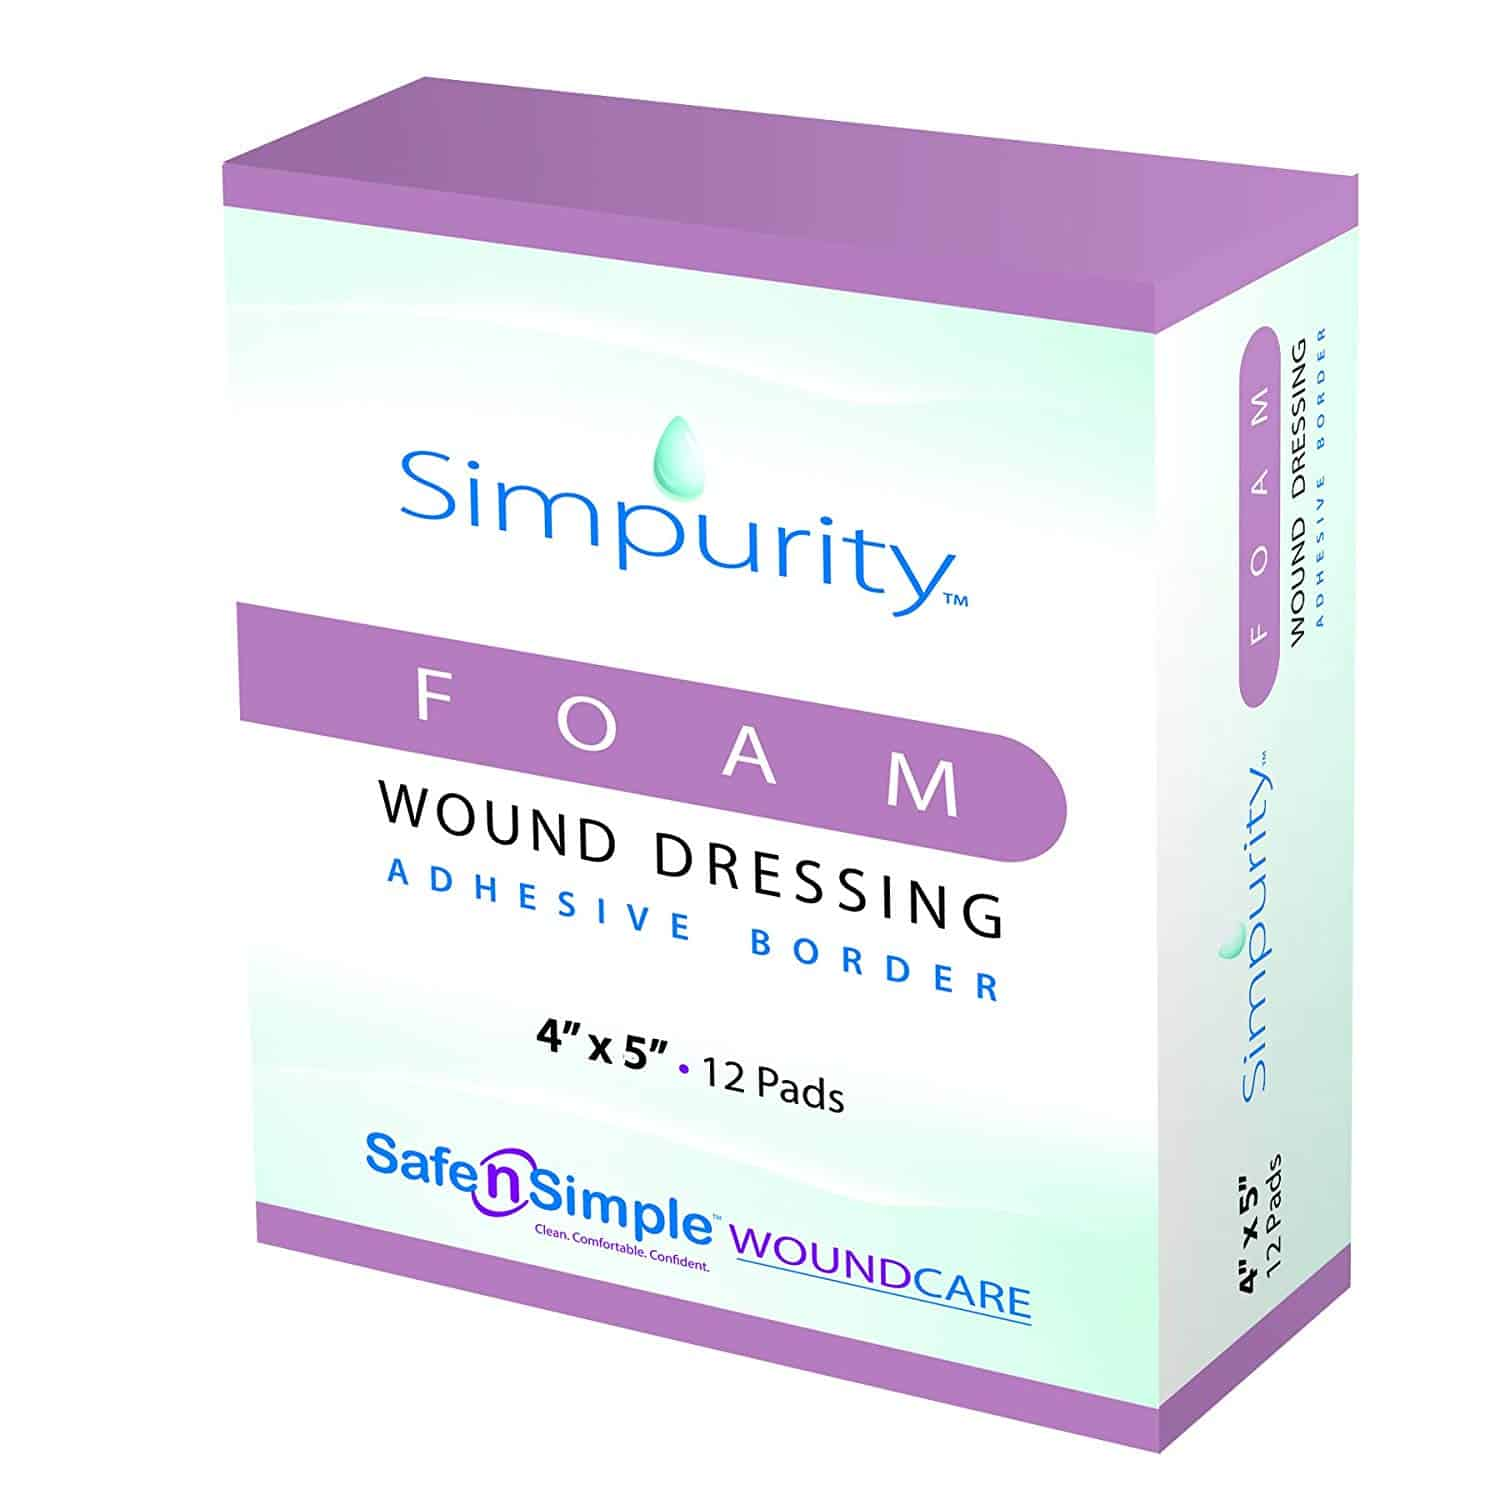 Simpurity Foam Wound Dressings with Border